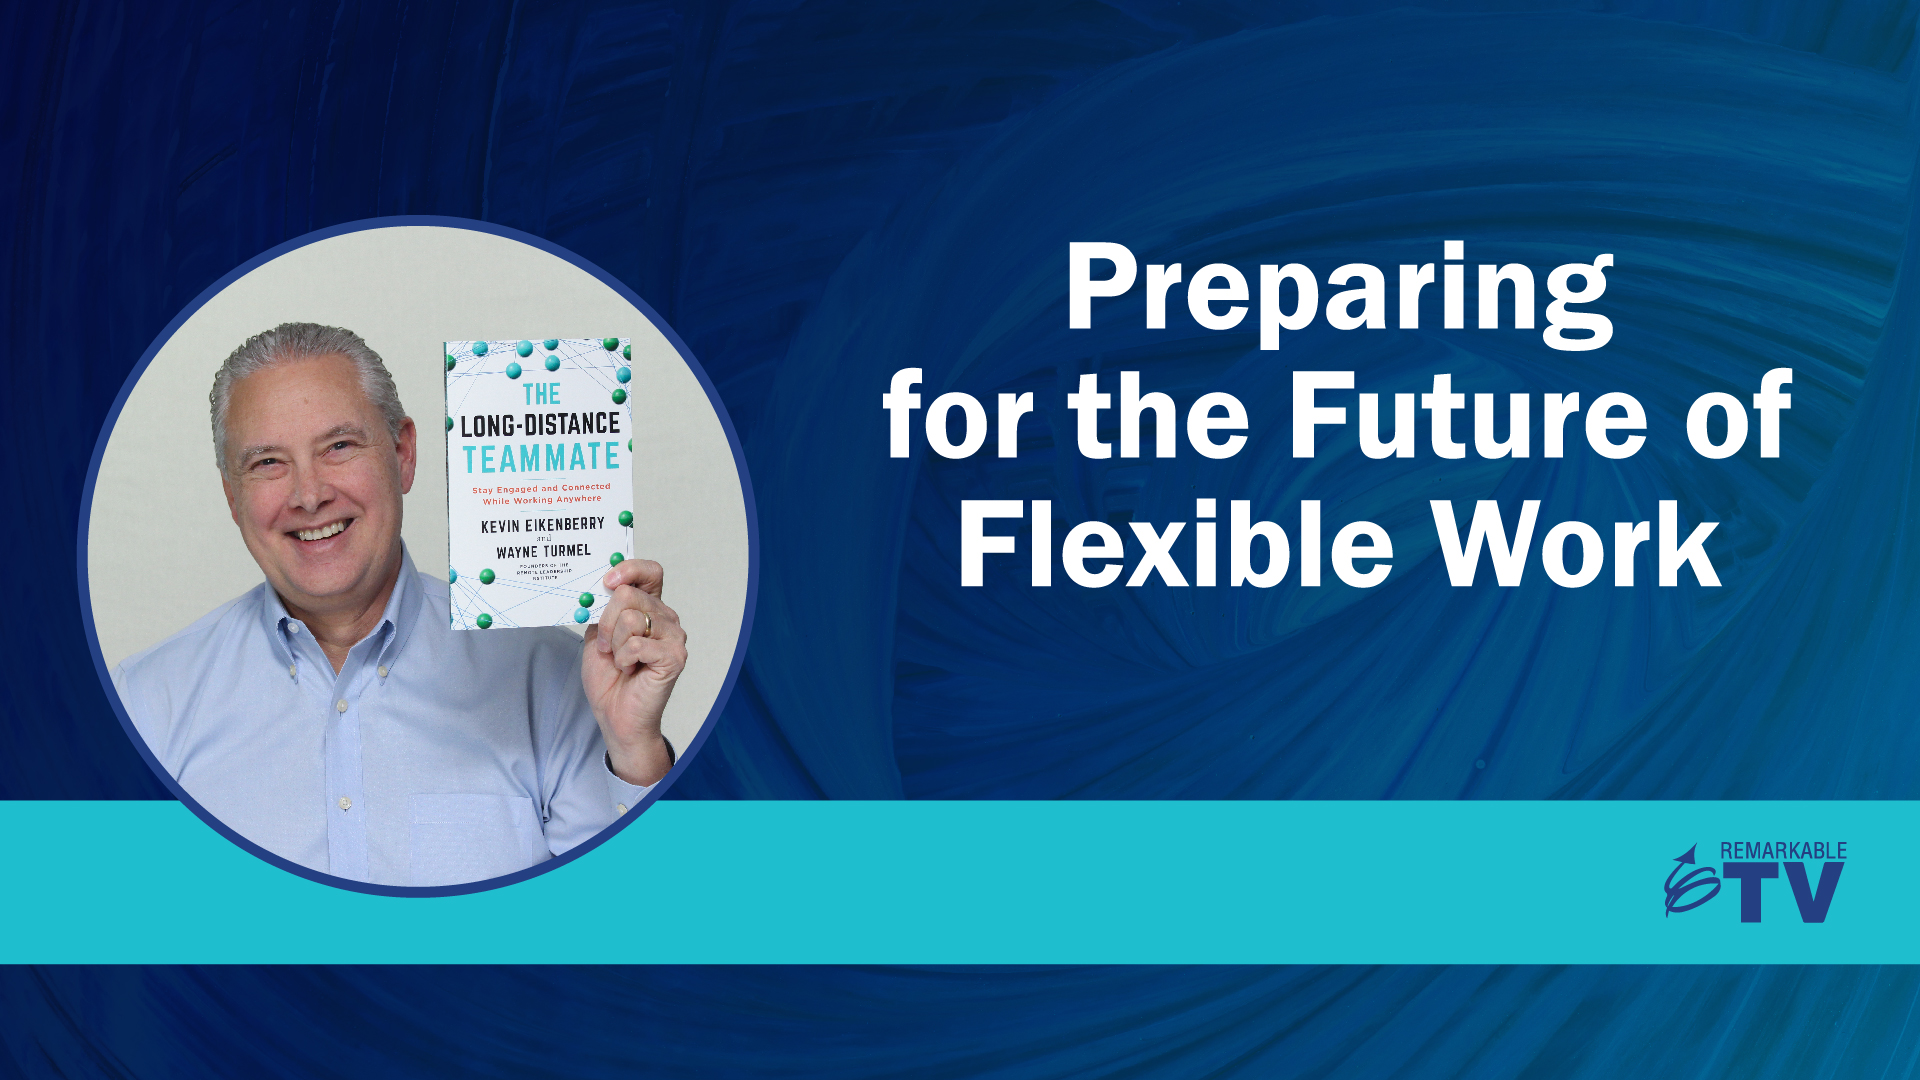 Preparing for the future of flexible work